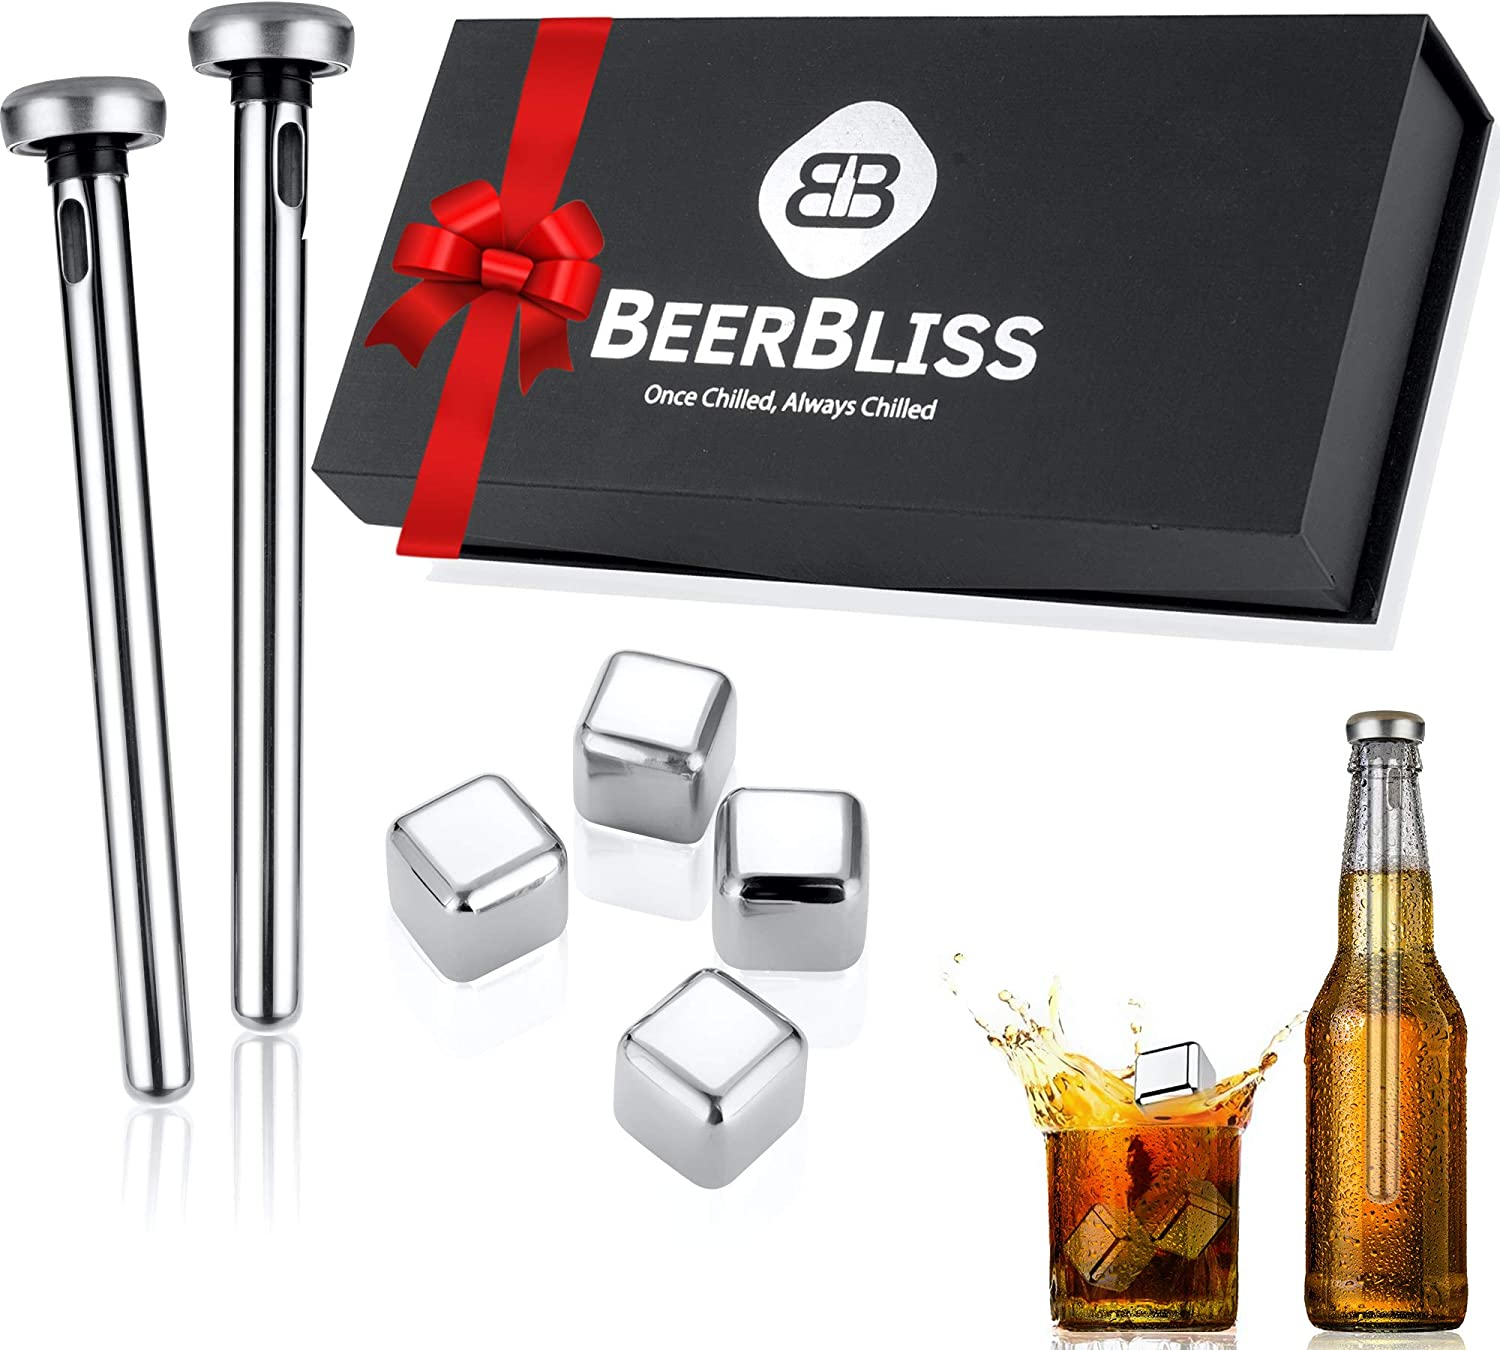 Beer Chiller Sticks for Bottles with Reusable Ice Cubes Set-Beer gift for men who love beer-Best beer gift idea for Birthday, Fathers Day, Christmas, Anniversary-Unique gadgets for boyfriend or dad